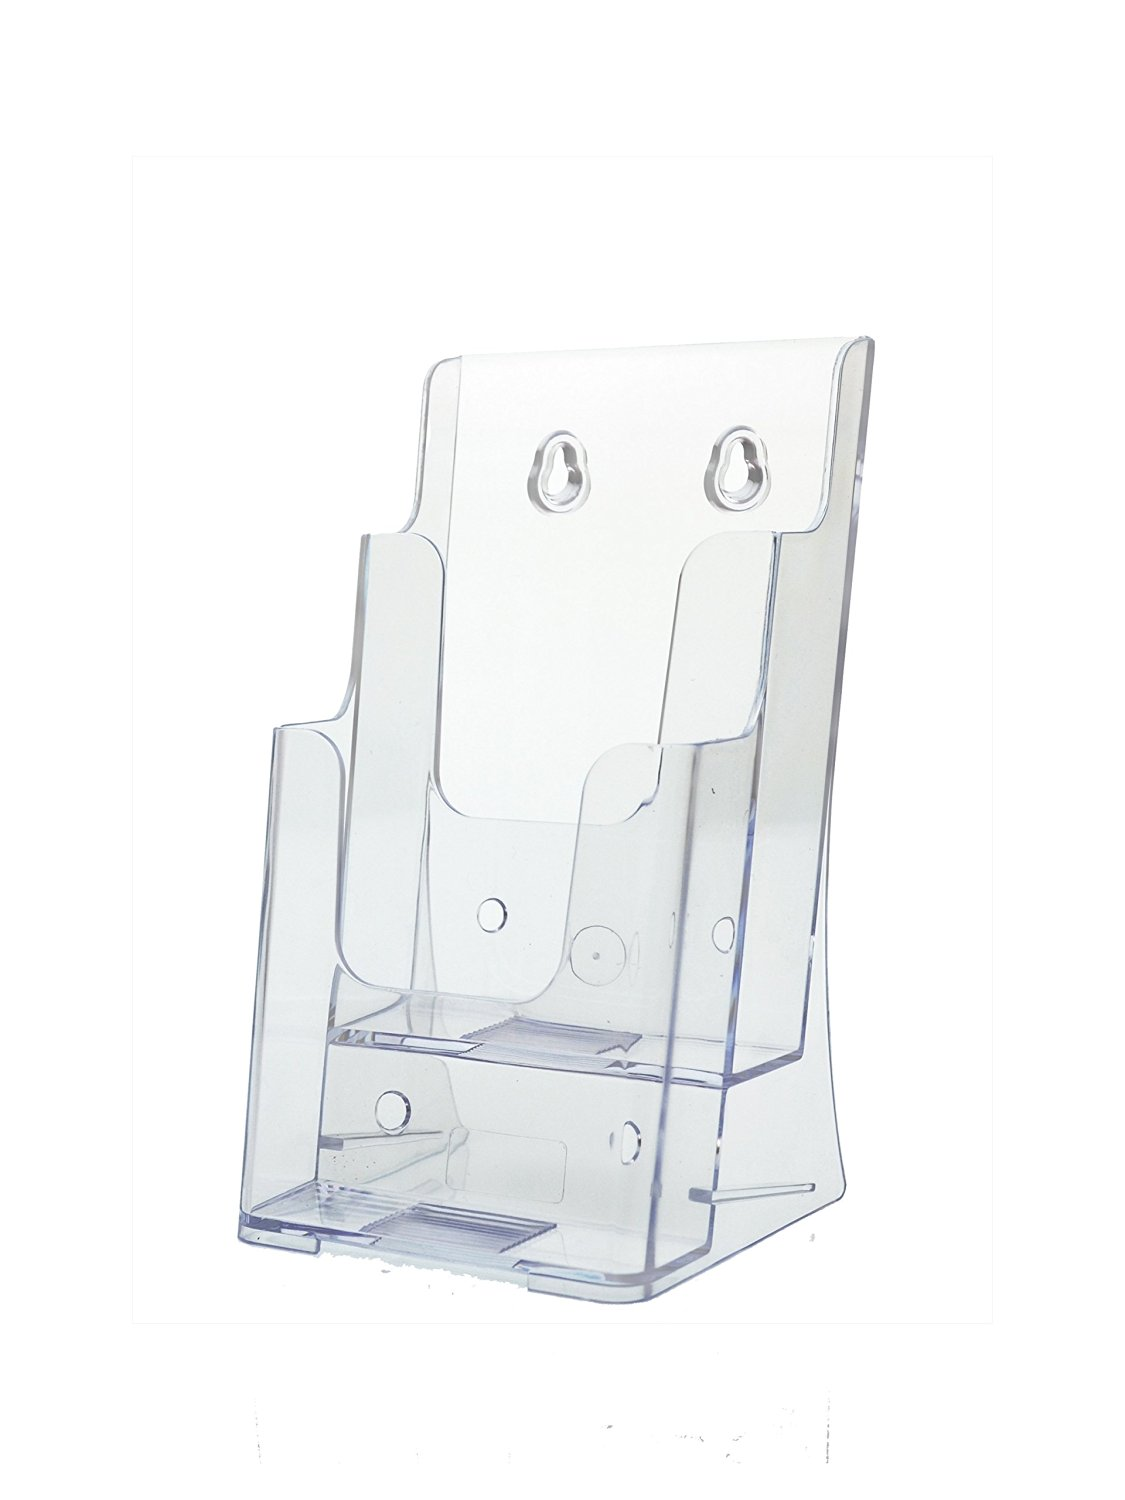 Marketing Holders Clear Acrylic 2 Pocket Brochure Holder for 4 Inch Wide Literature, Tri-fold Brochures, Wall Mount or Counter (Lot of 24)